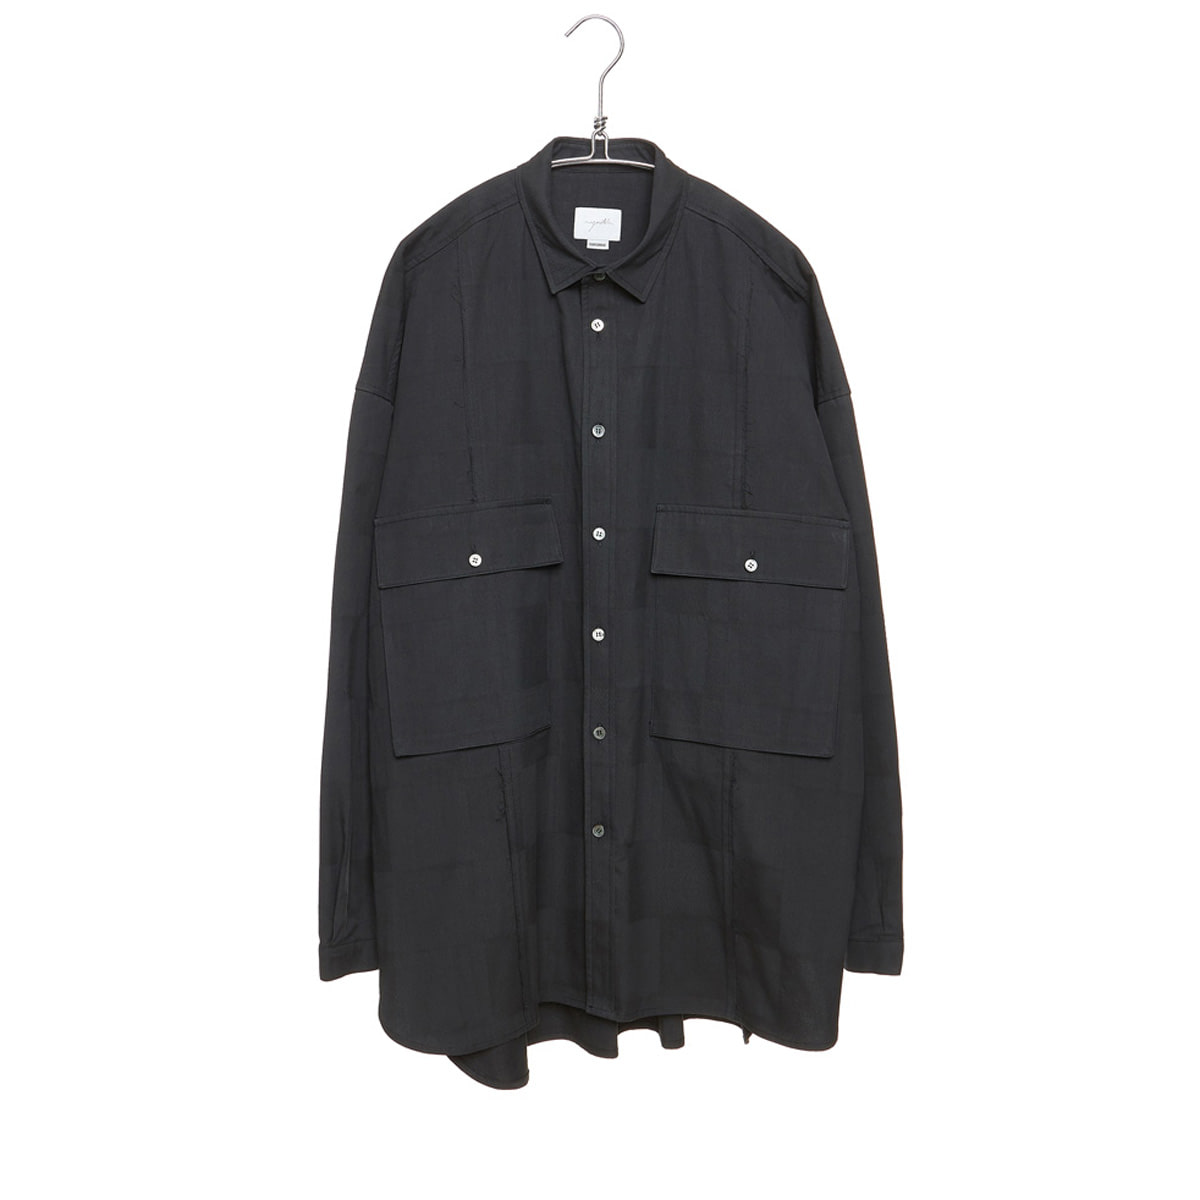 [YOUTH] CUT-OFF SHIRT 'BLACK'